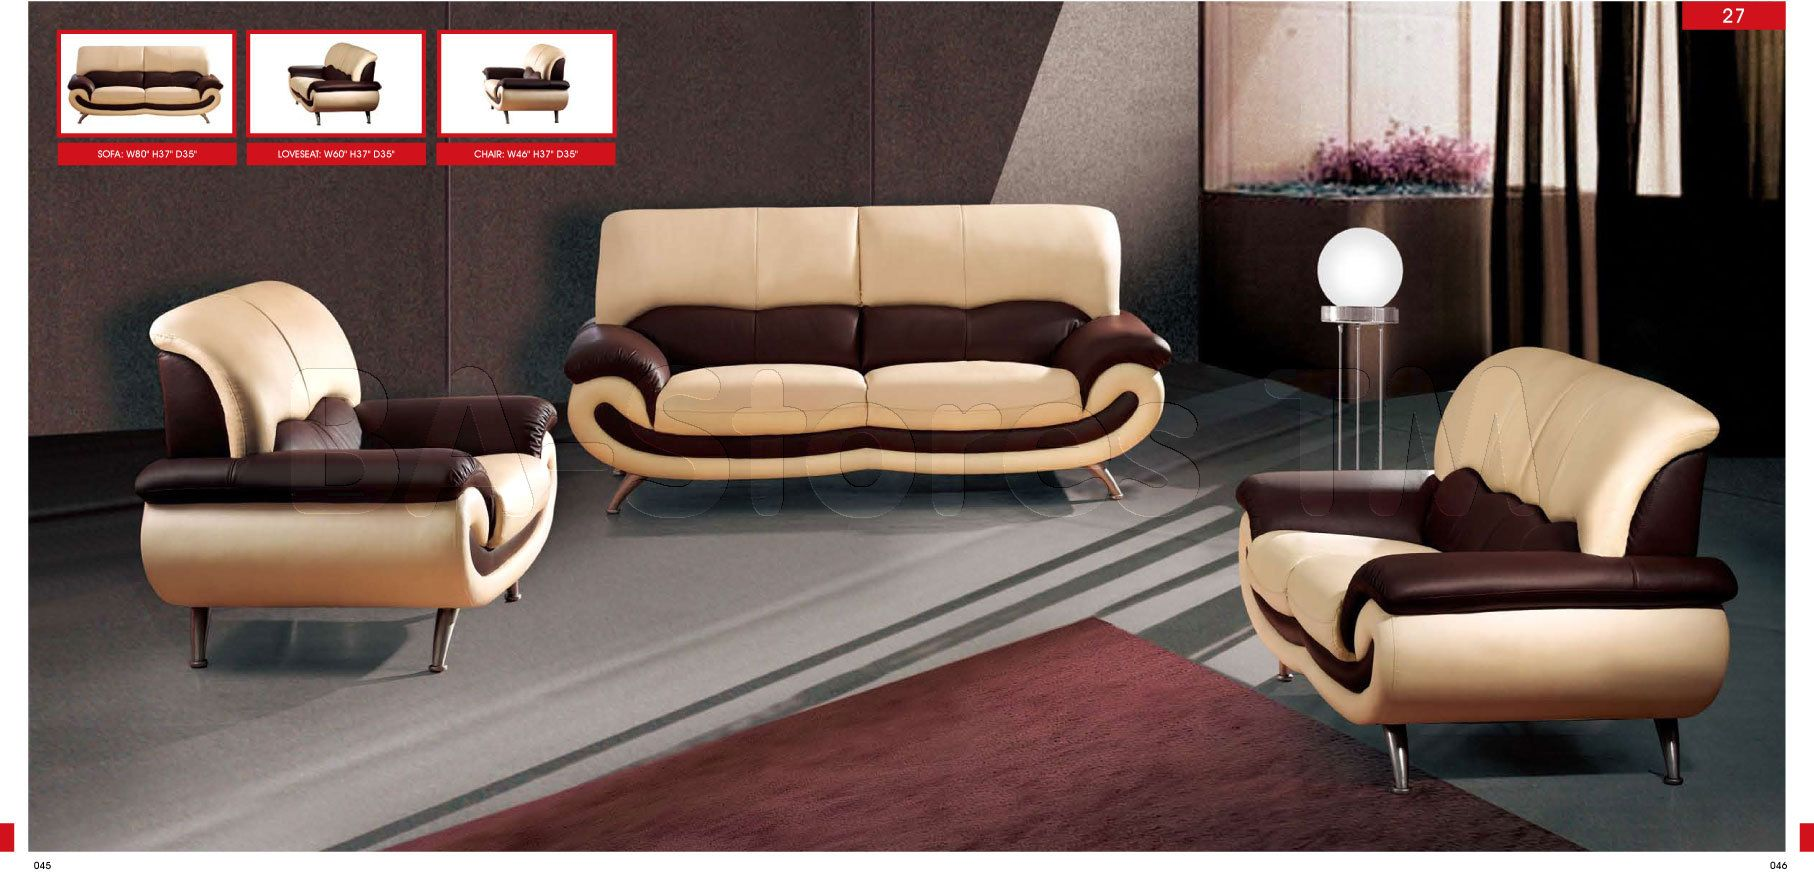 Room Store Living Room Furniture 1000 Images About Comfort On Pinterest Toys Sectional Sofas